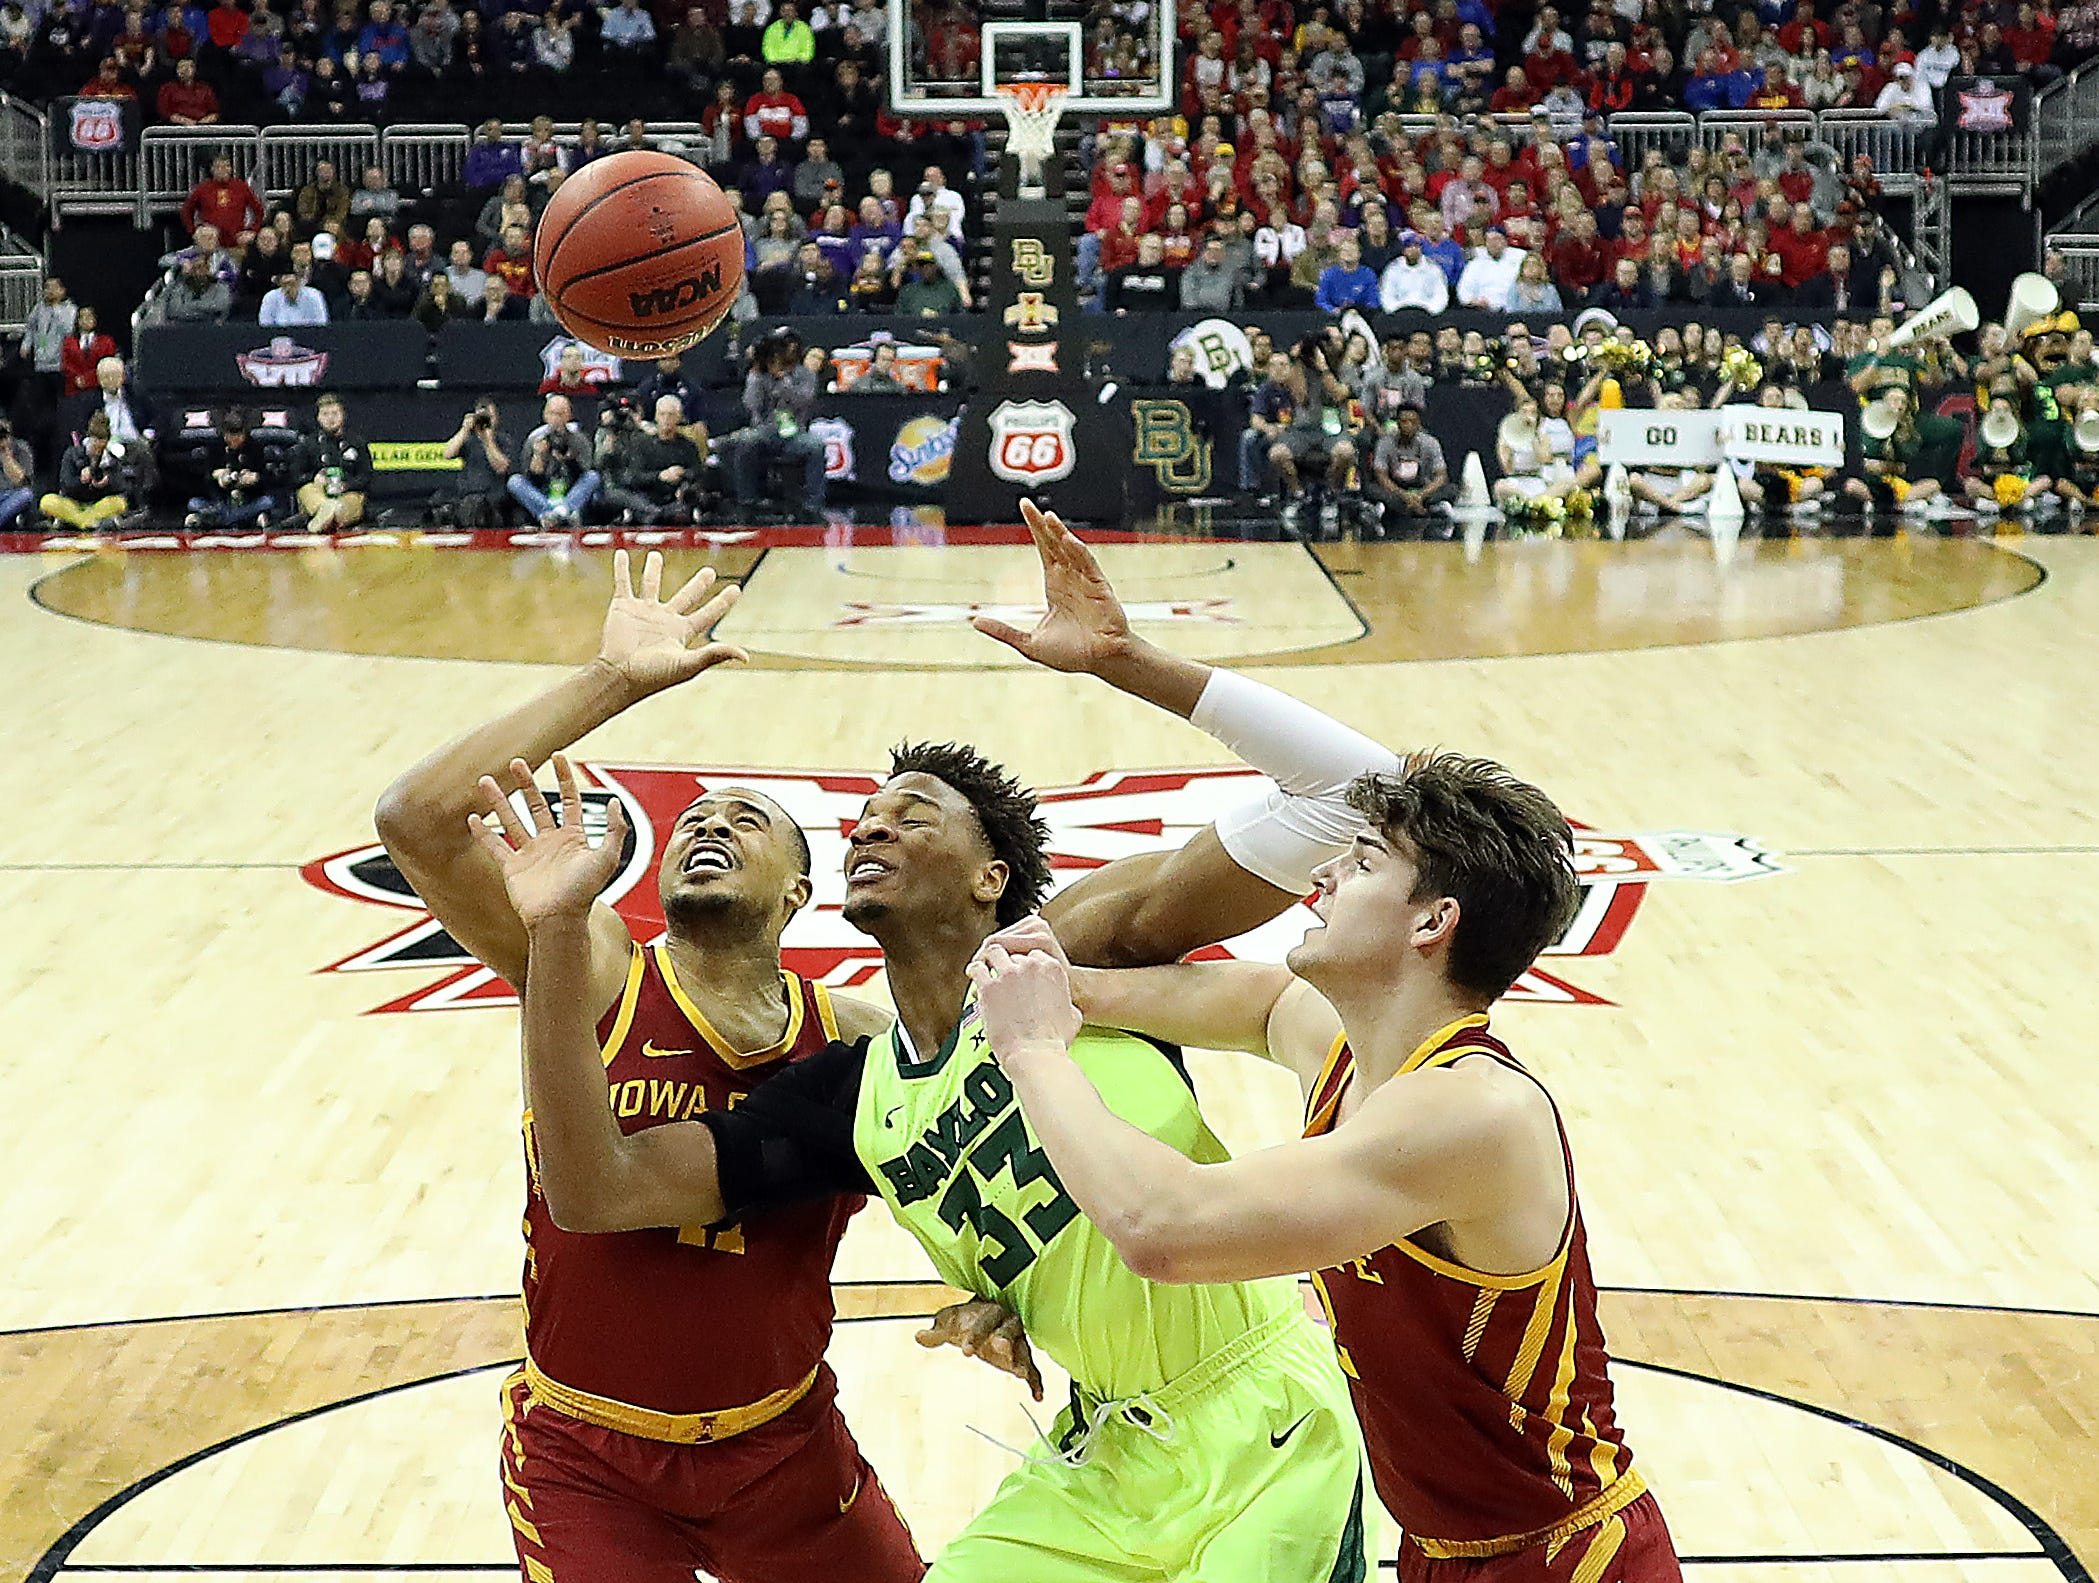 KANSAS CITY, MISSOURI - MARCH 14:  Freddie Gillespie #33 of the Baylor Bears battles Talen Horton-Tucker #11 and Michael Jacobson #12 of the Iowa State Cyclones for a rebound during the quarterfinal game of the Big 12 Basketball Tournament at Sprint Center on March 14, 2019 in Kansas City, Missouri. (Photo by Jamie Squire/Getty Images)